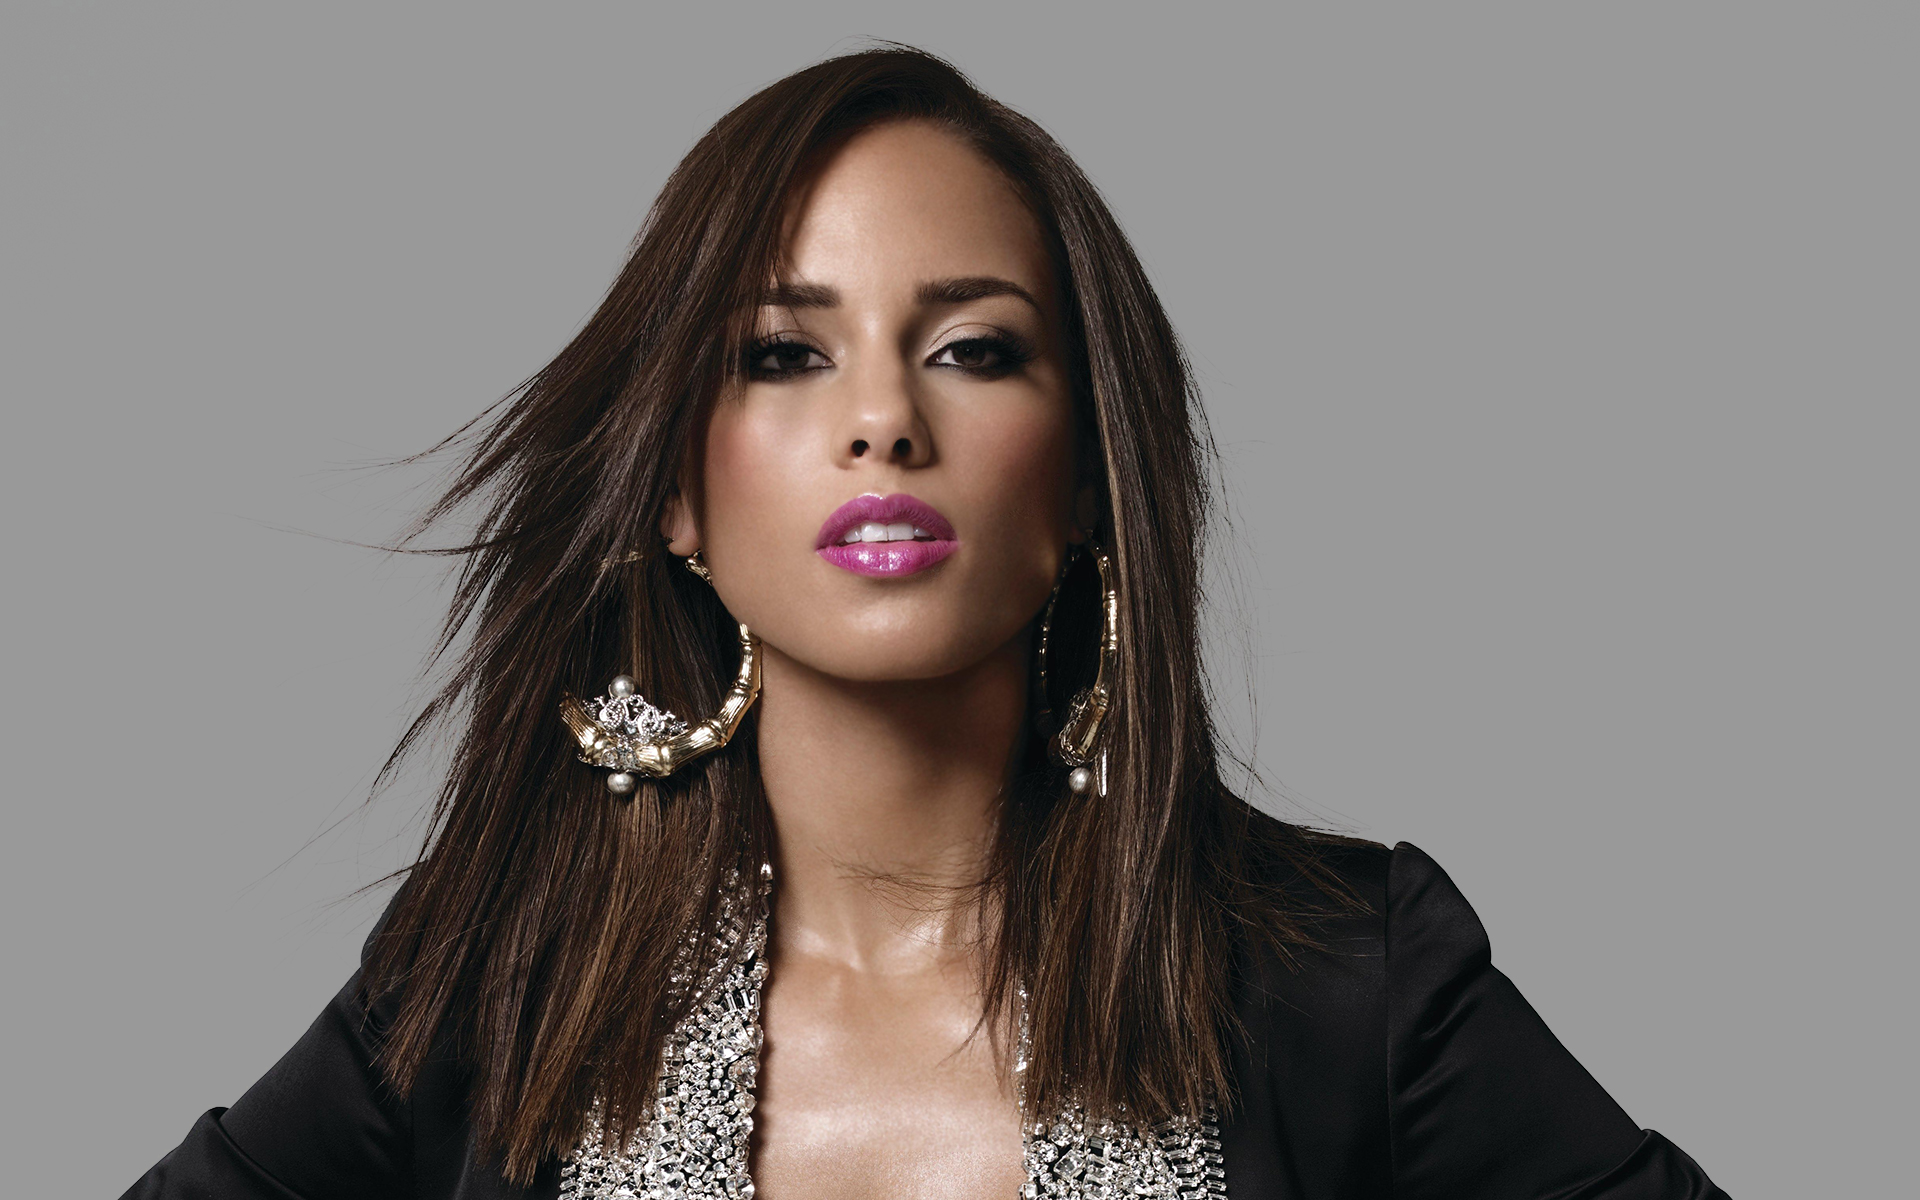 Alicia keys Wallpapers Pictures Photos Images. «